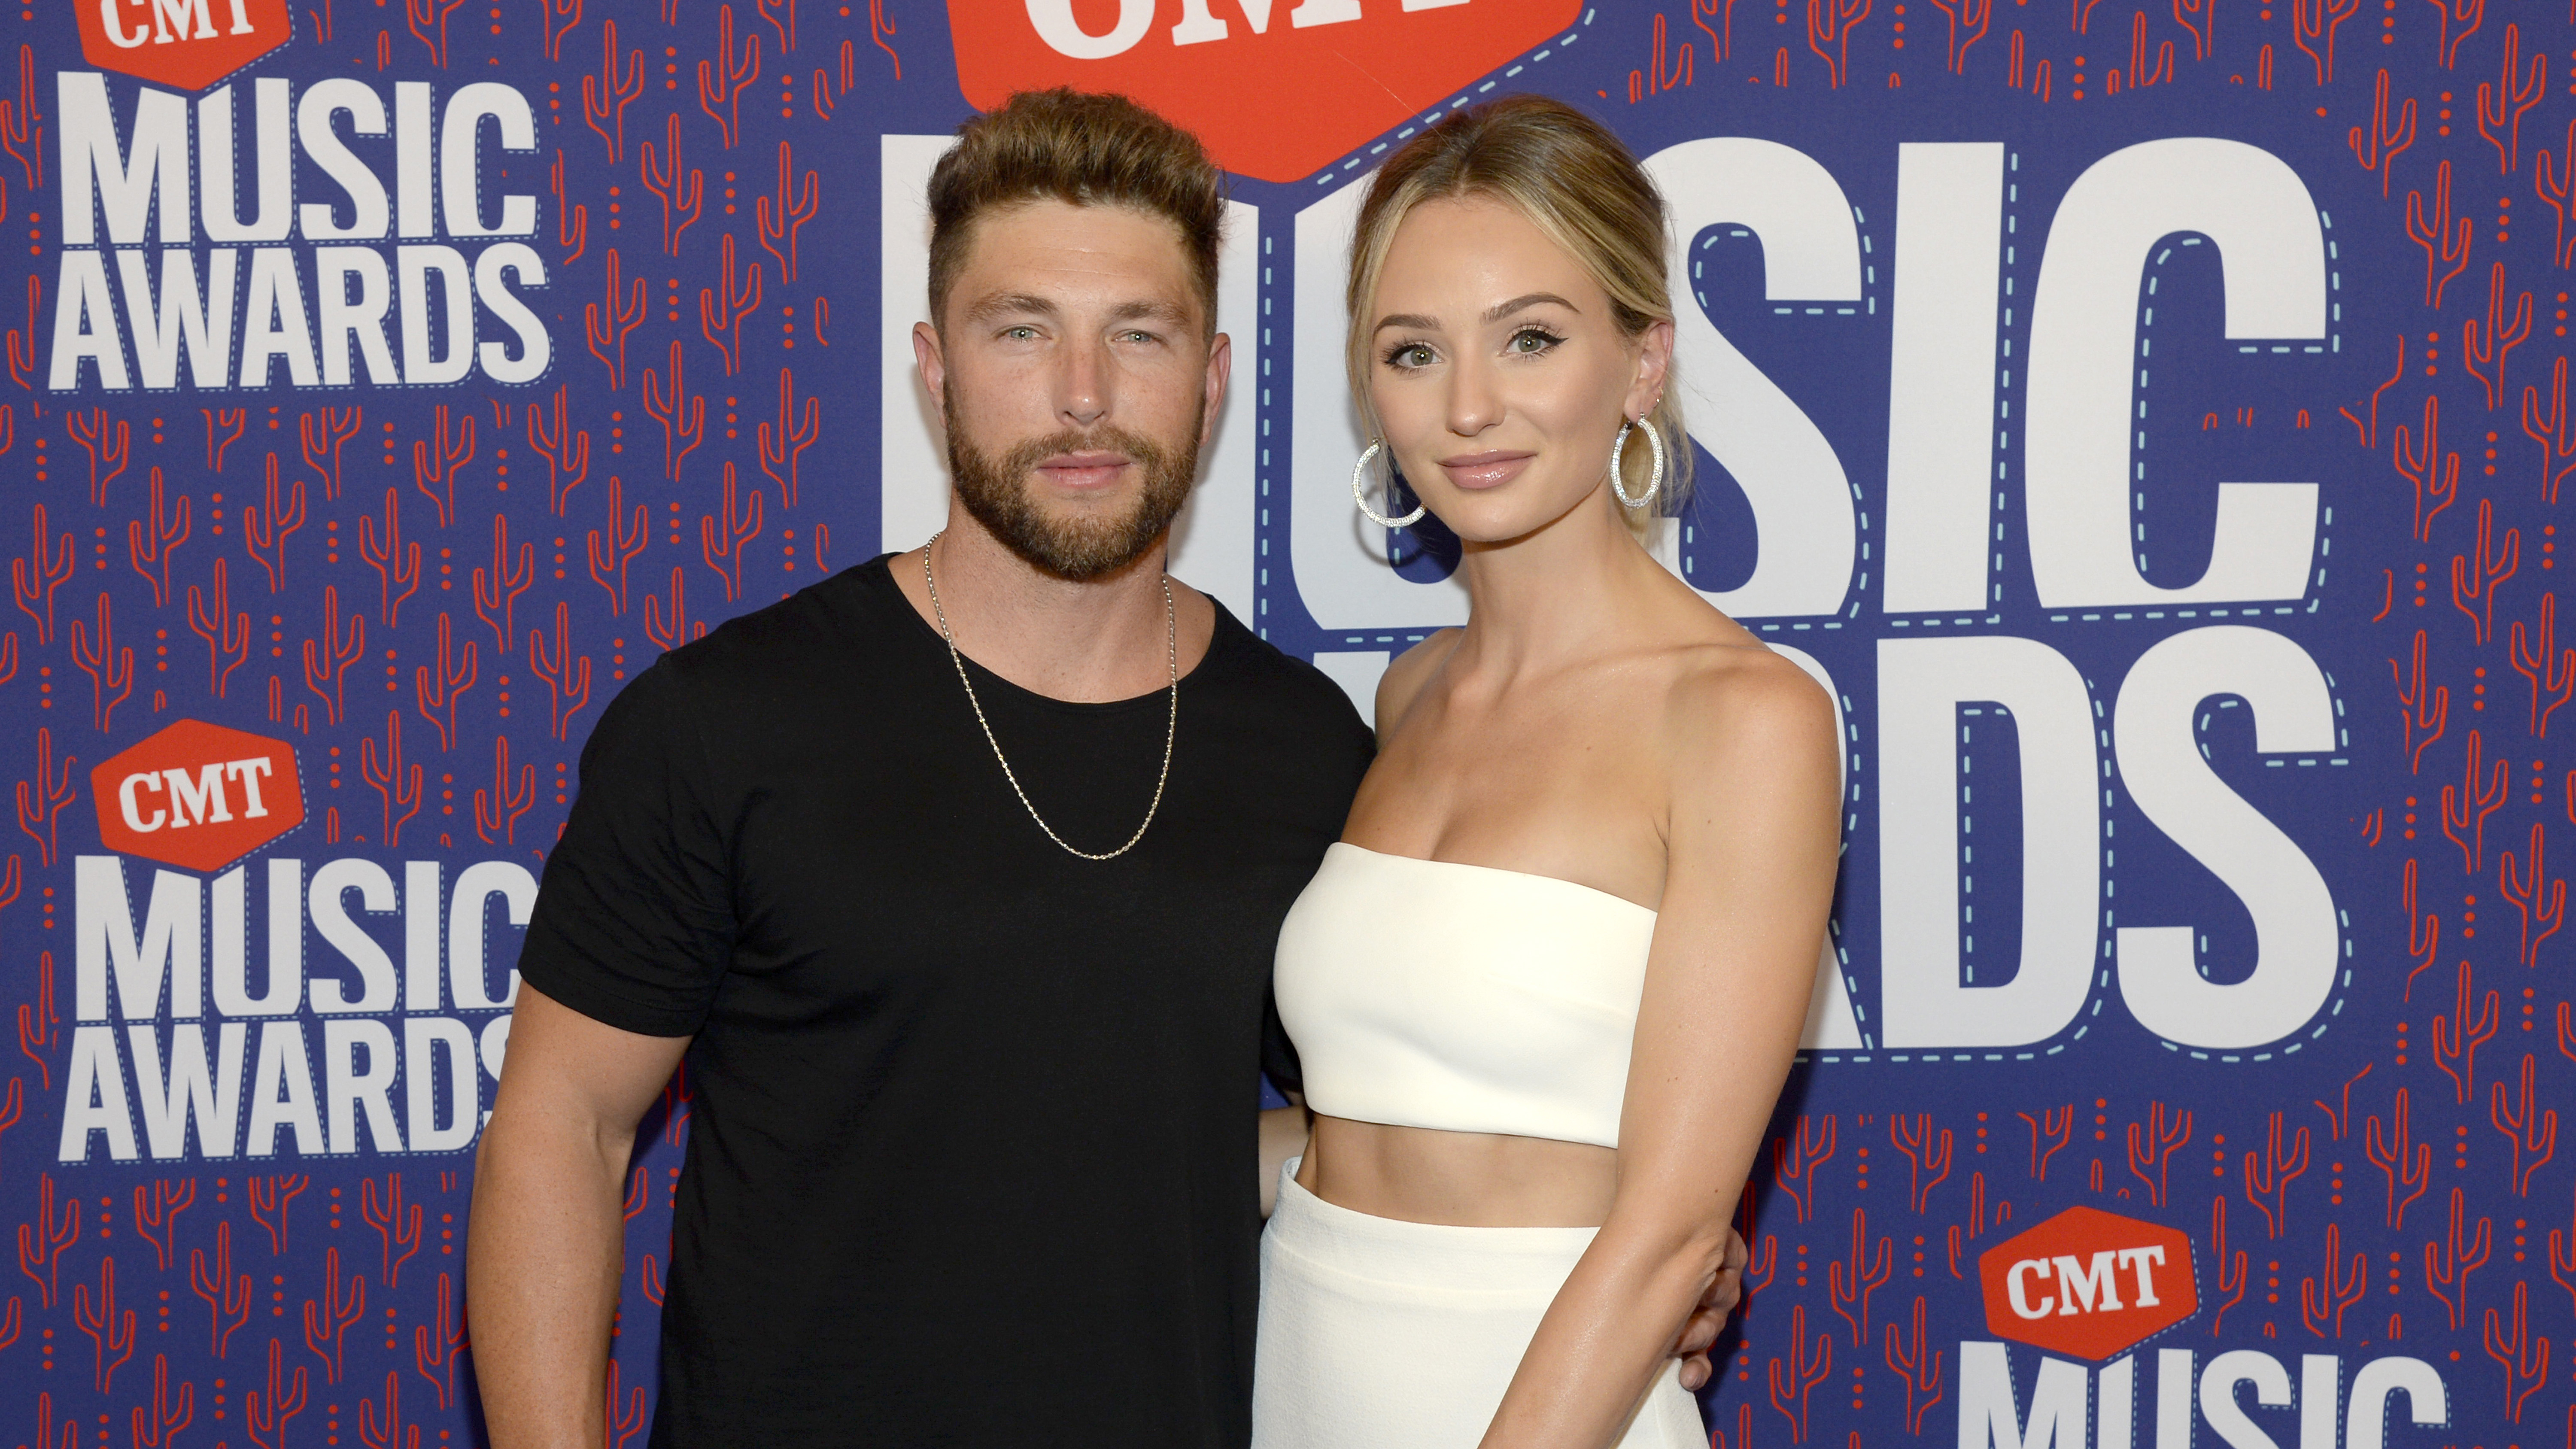 Westlake Legal Group ChrisLauren-GETTY Country singer Chris Lane and reality star Lauren Bushnell are engaged Jessica Napoli fox-news/entertainment/music fox-news/entertainment/genres/reality fox-news/entertainment/genres/country fox-news/entertainment/events/couples fox-news/entertainment fox news fnc/entertainment fnc article 104a911b-7606-520f-9b36-80acce2a49d8